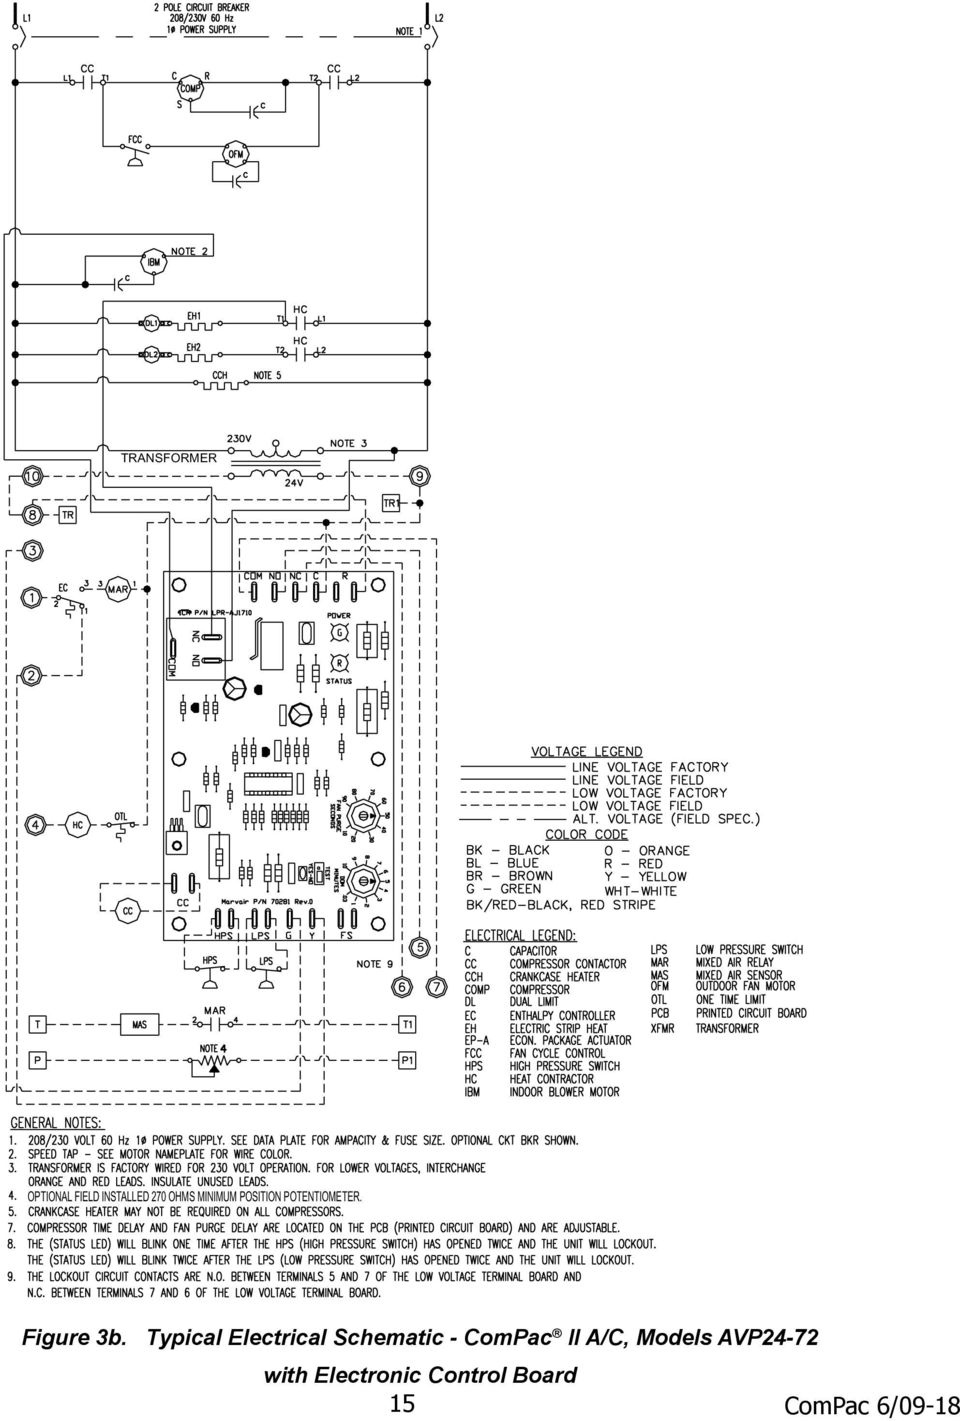 ComPac I and ComPac II Air Conditioner Product Manual - PDF Free DownloadDocPlayer.net